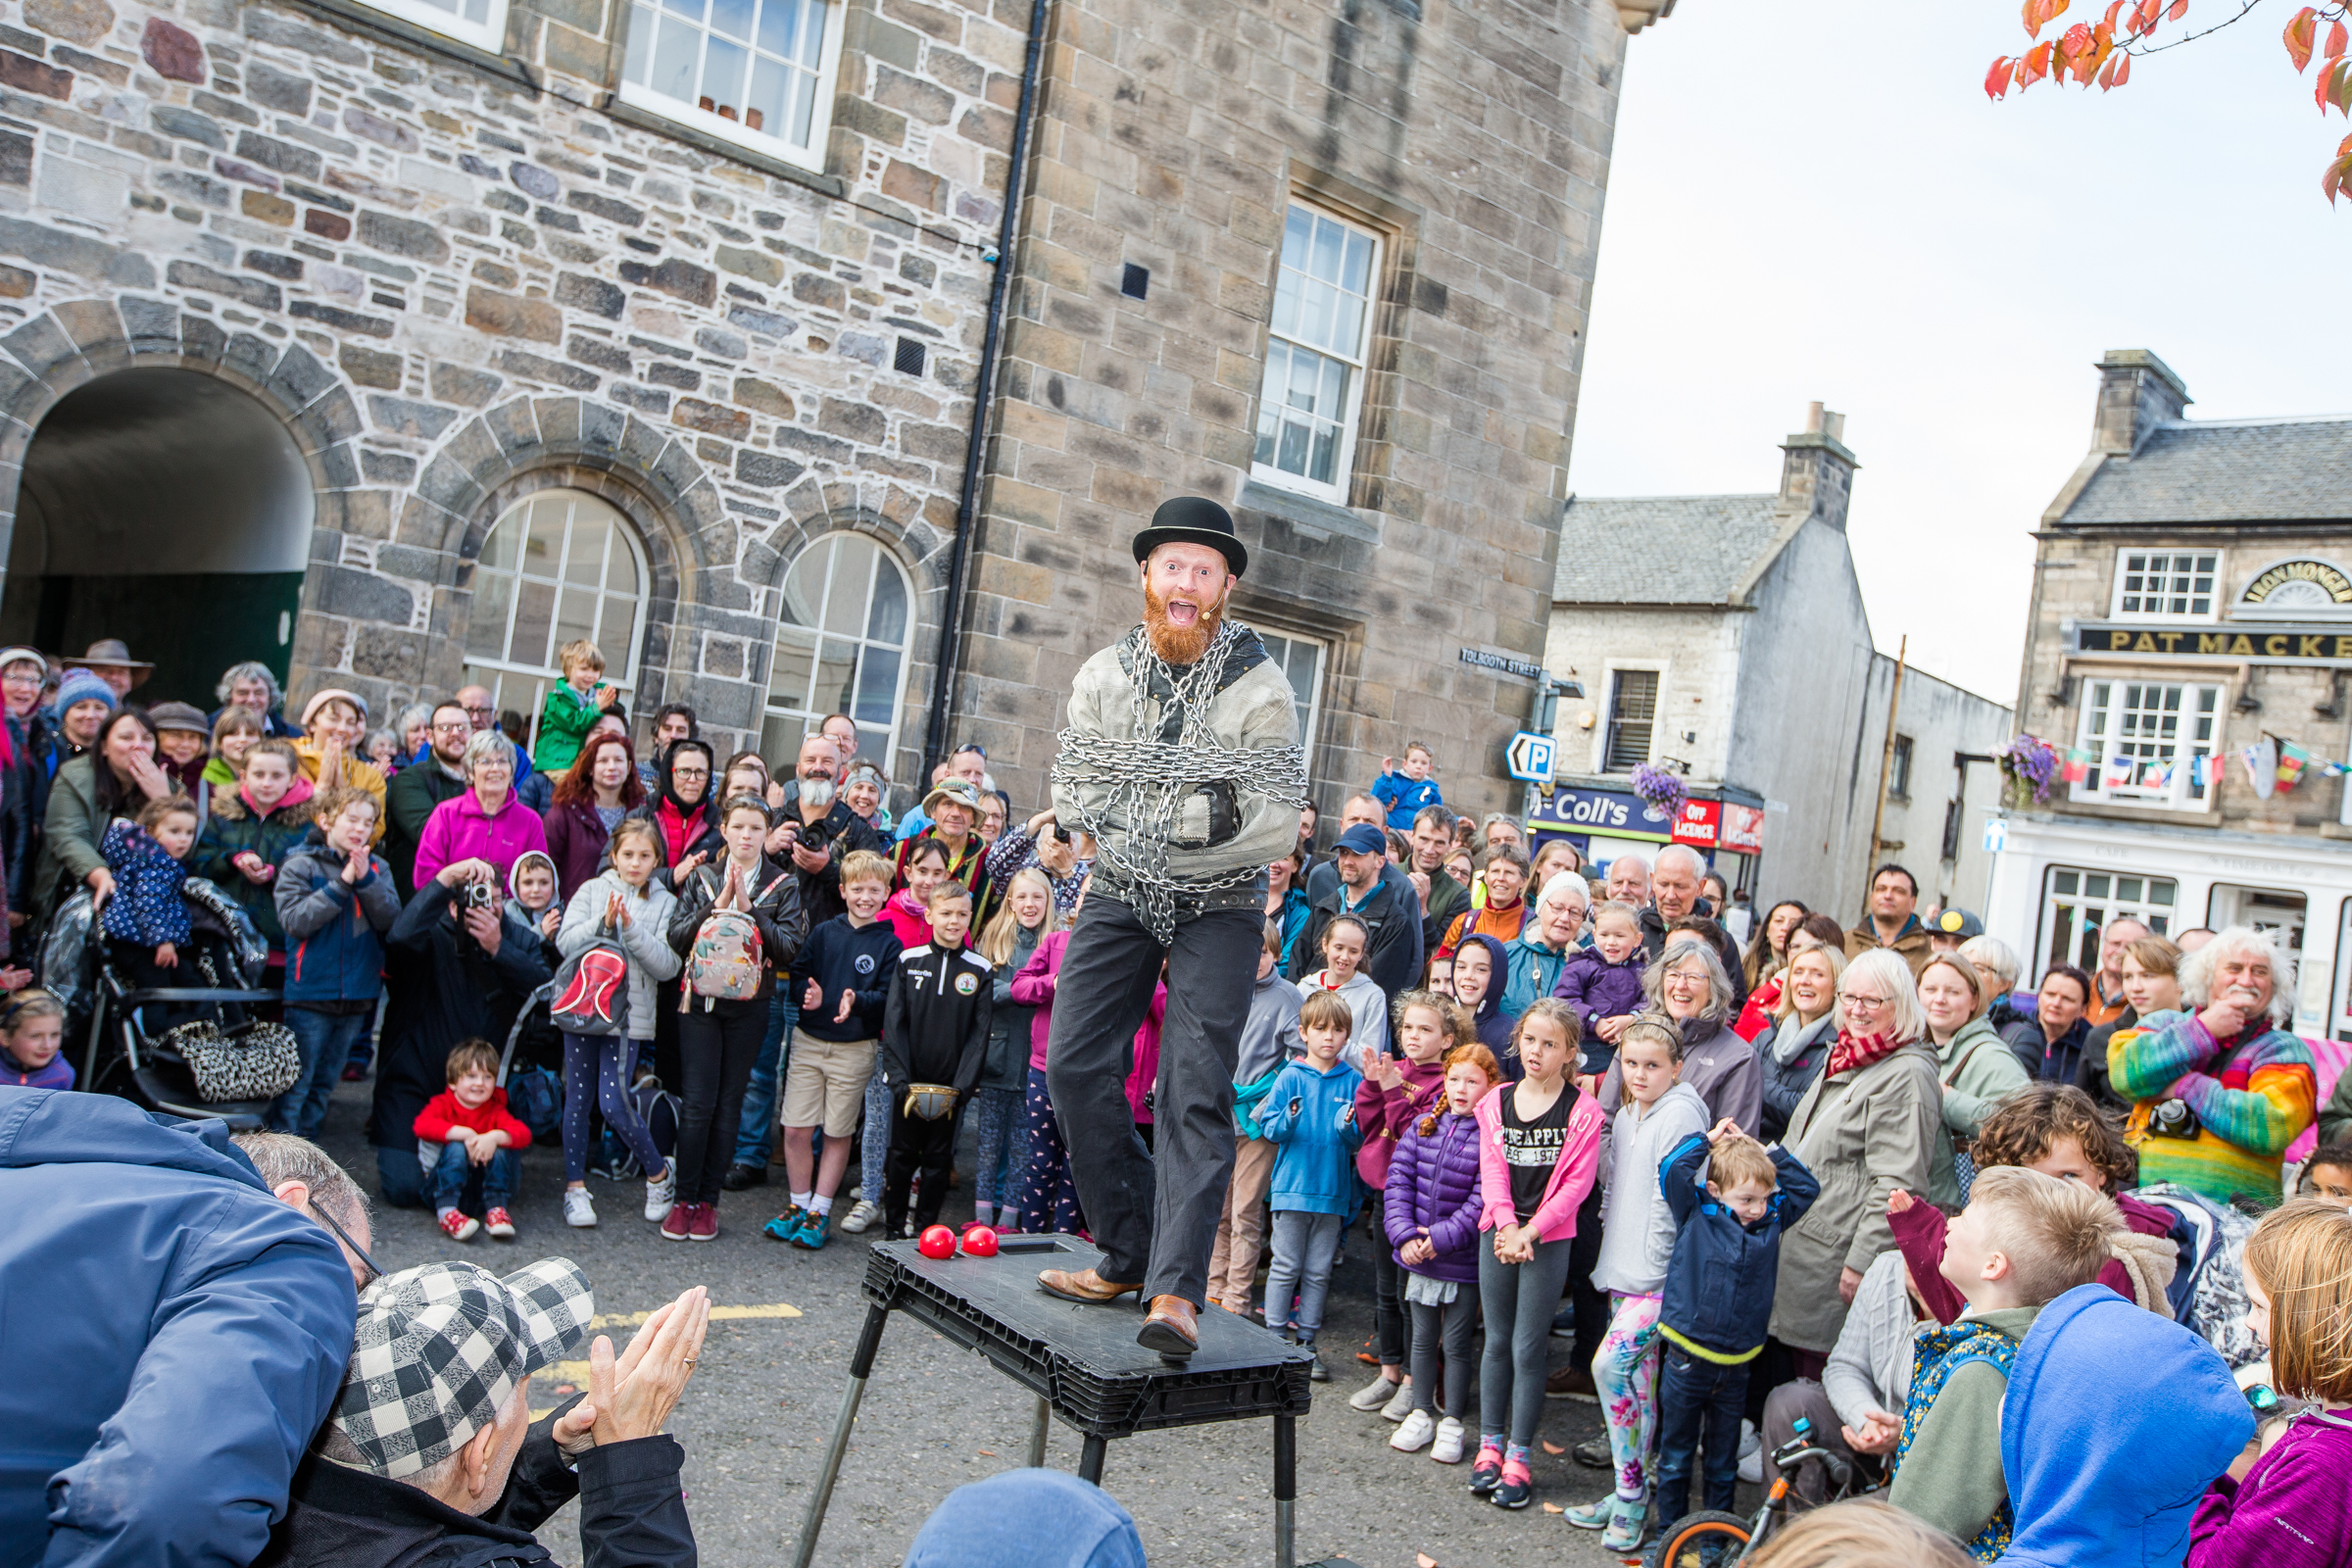 Performer Todd Various performs at Culture Day in Forres as part of the festival.